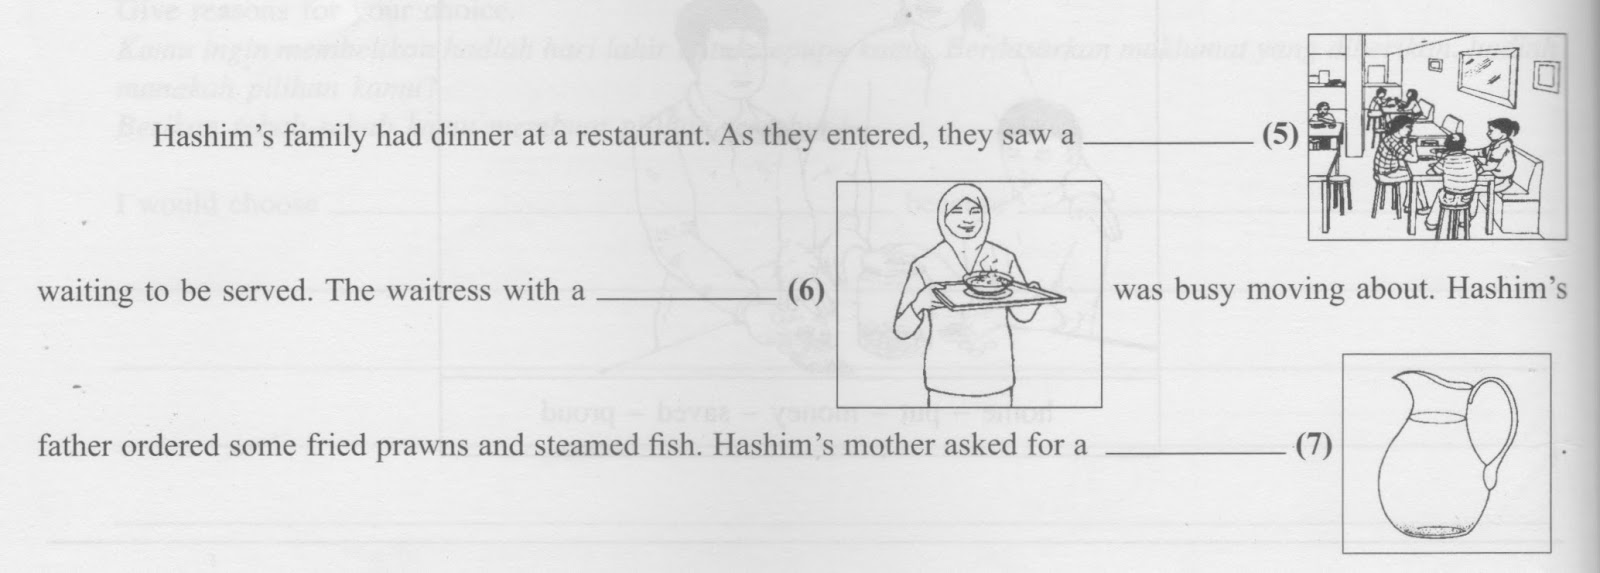 Hashim's family had dinner at arestaurant.